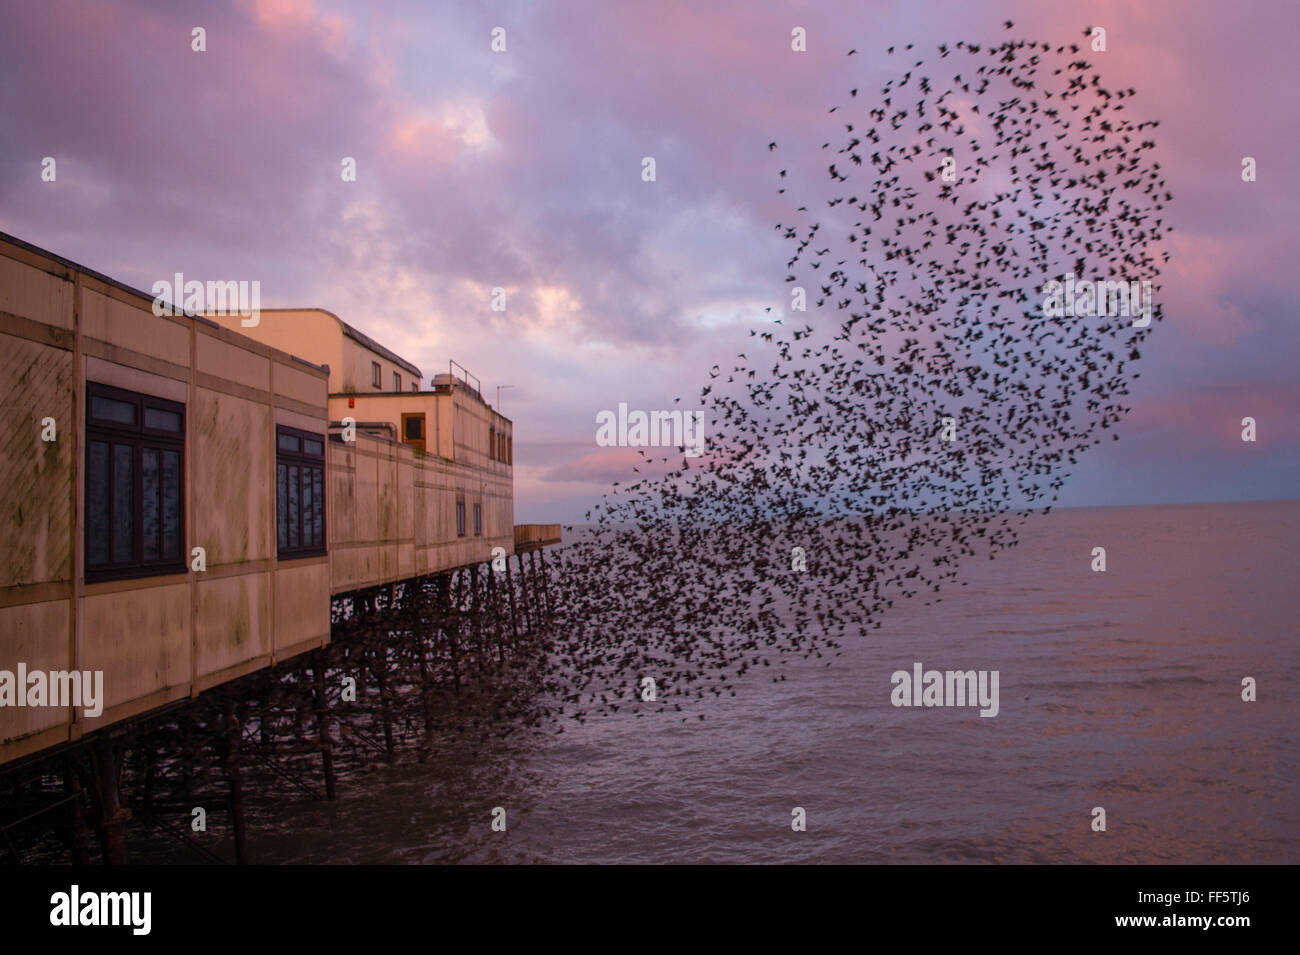 Aberystwyth, Wales, UK. 11th February, 2016.  UK Weather - At first light on a cold February morning, tens of thousands Stock Photo